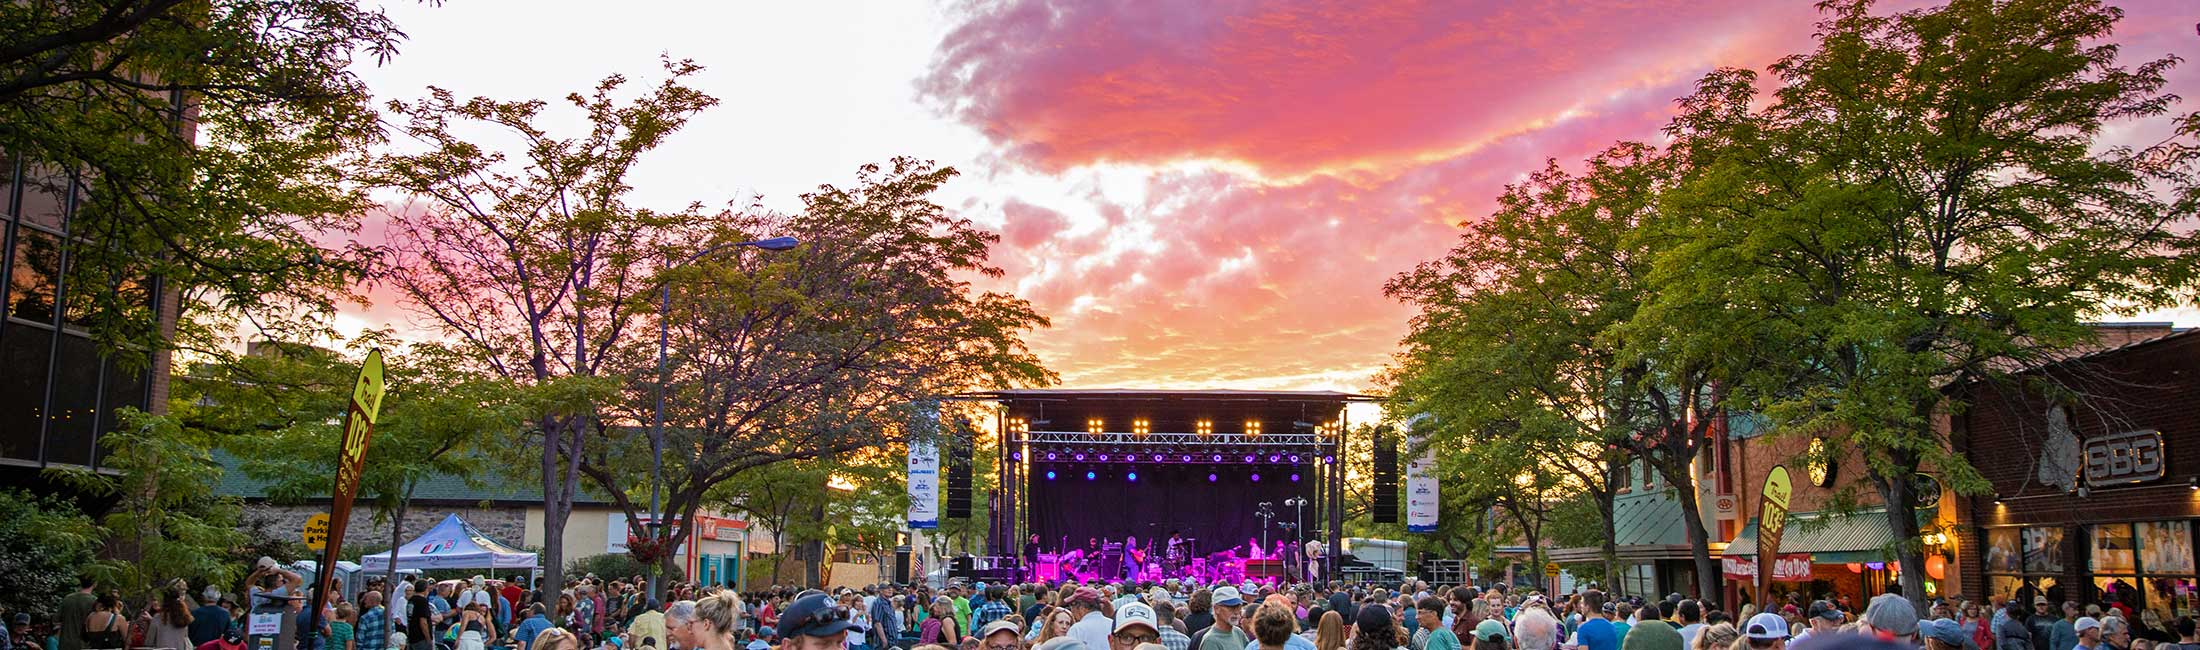 Summer Concerts in Missoula